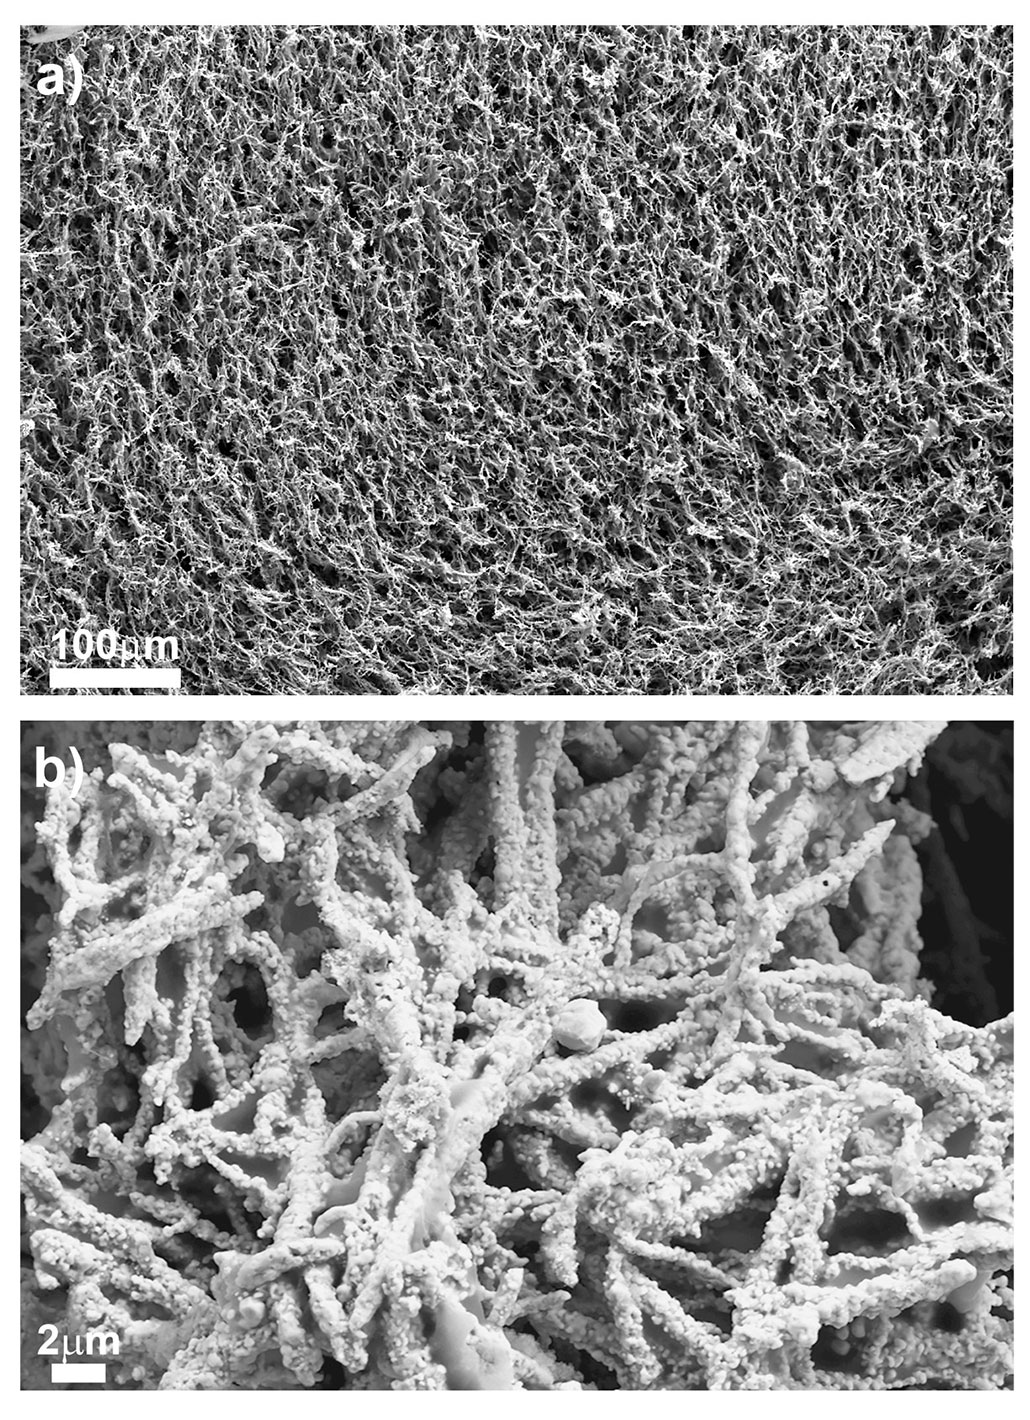 microscopic images of copper foam